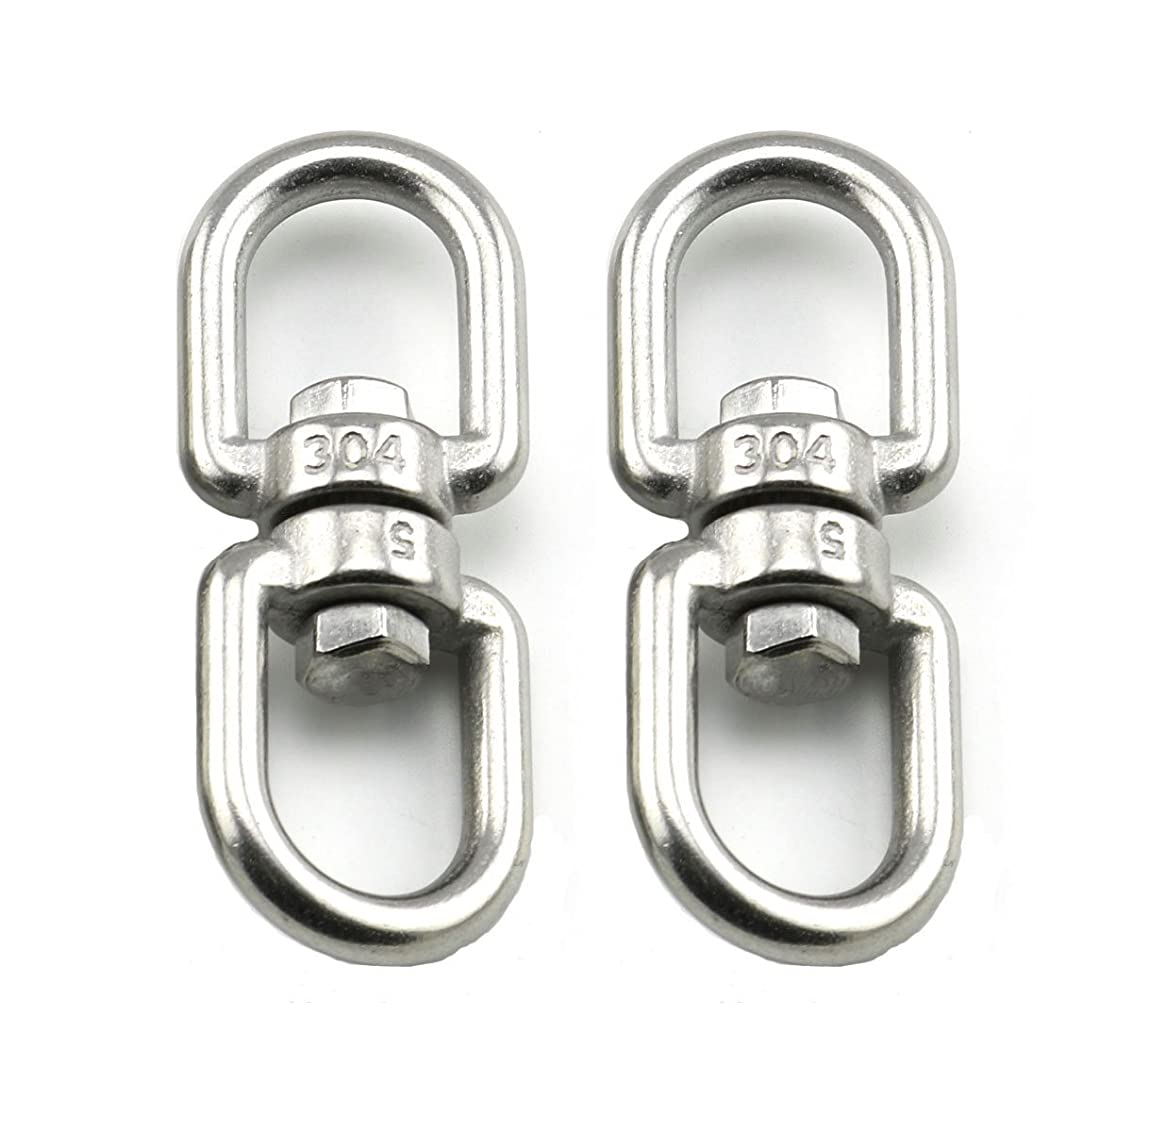 Lind Kitchen 2PCS M5 Double Ended Swivel Eye Hook 304 Stainless Steel Eye to Eye Swivel Shackle Ring Connector